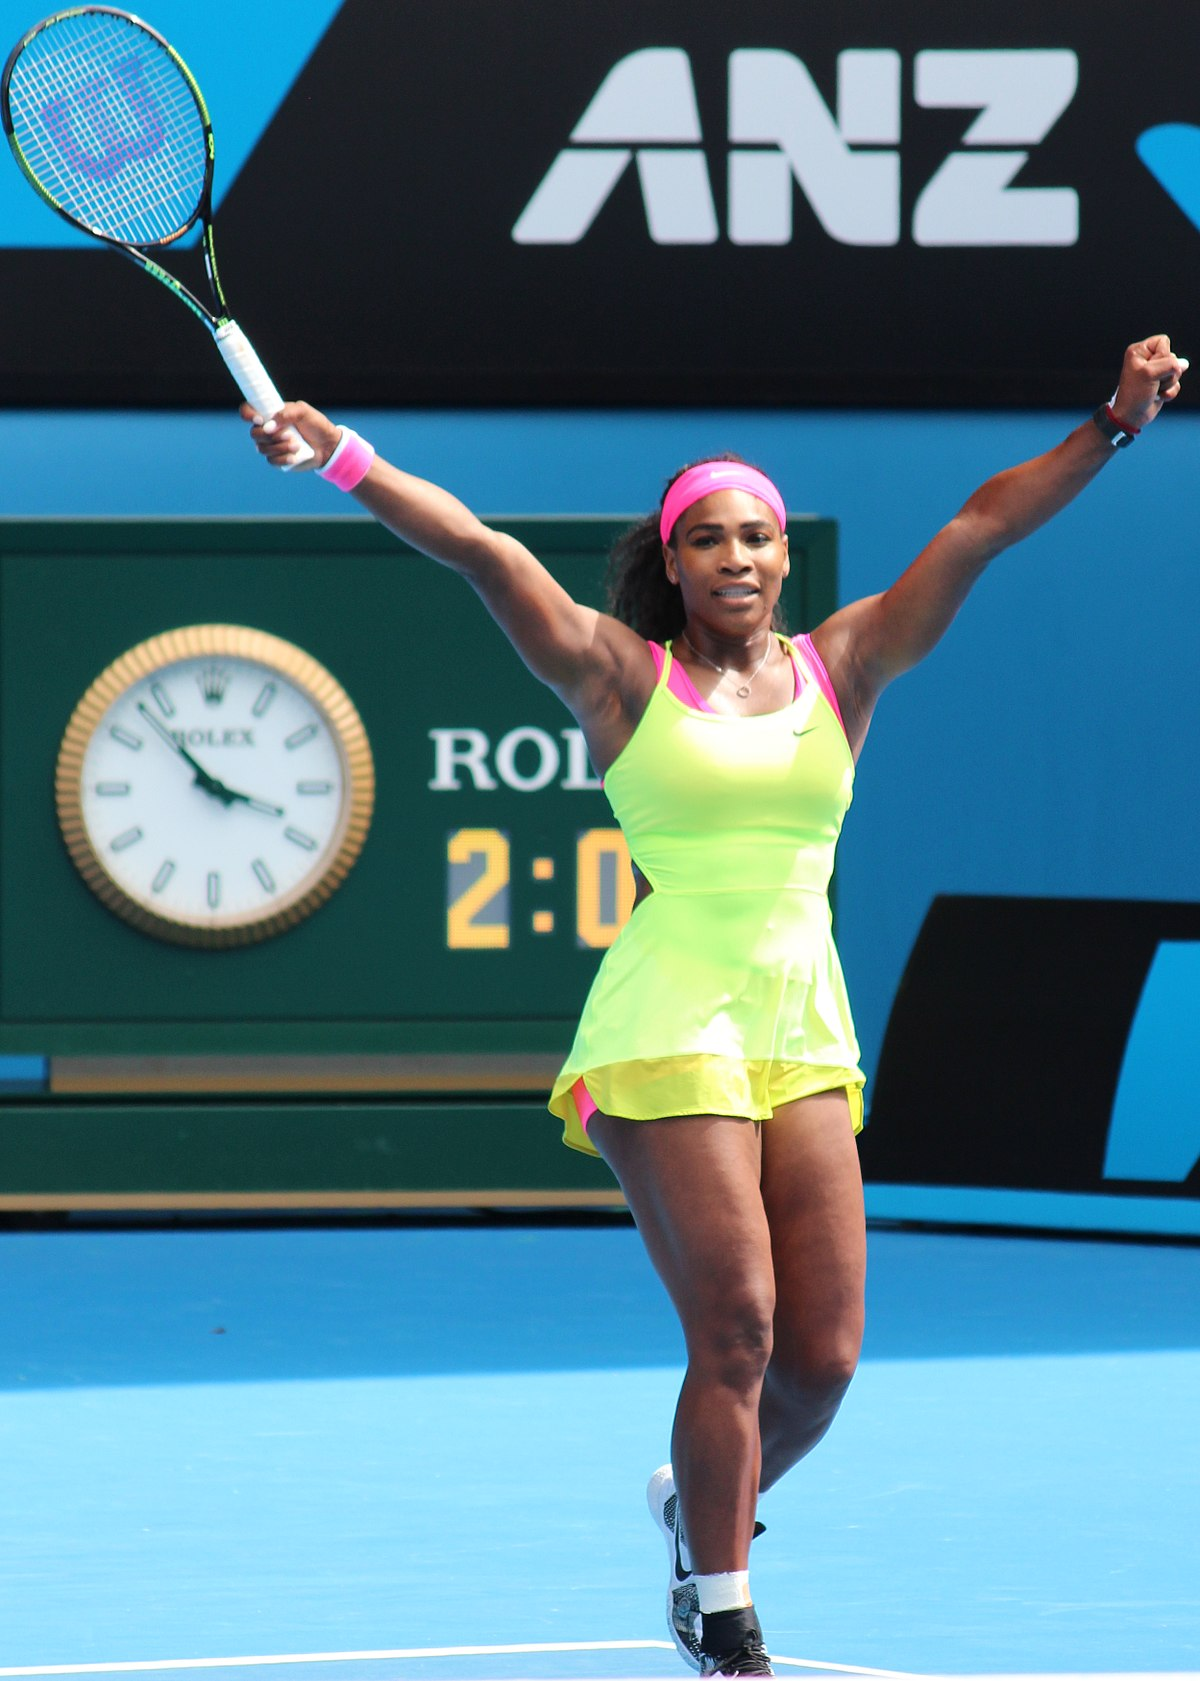 2015 serena williams tennis season wikipedia. Black Bedroom Furniture Sets. Home Design Ideas